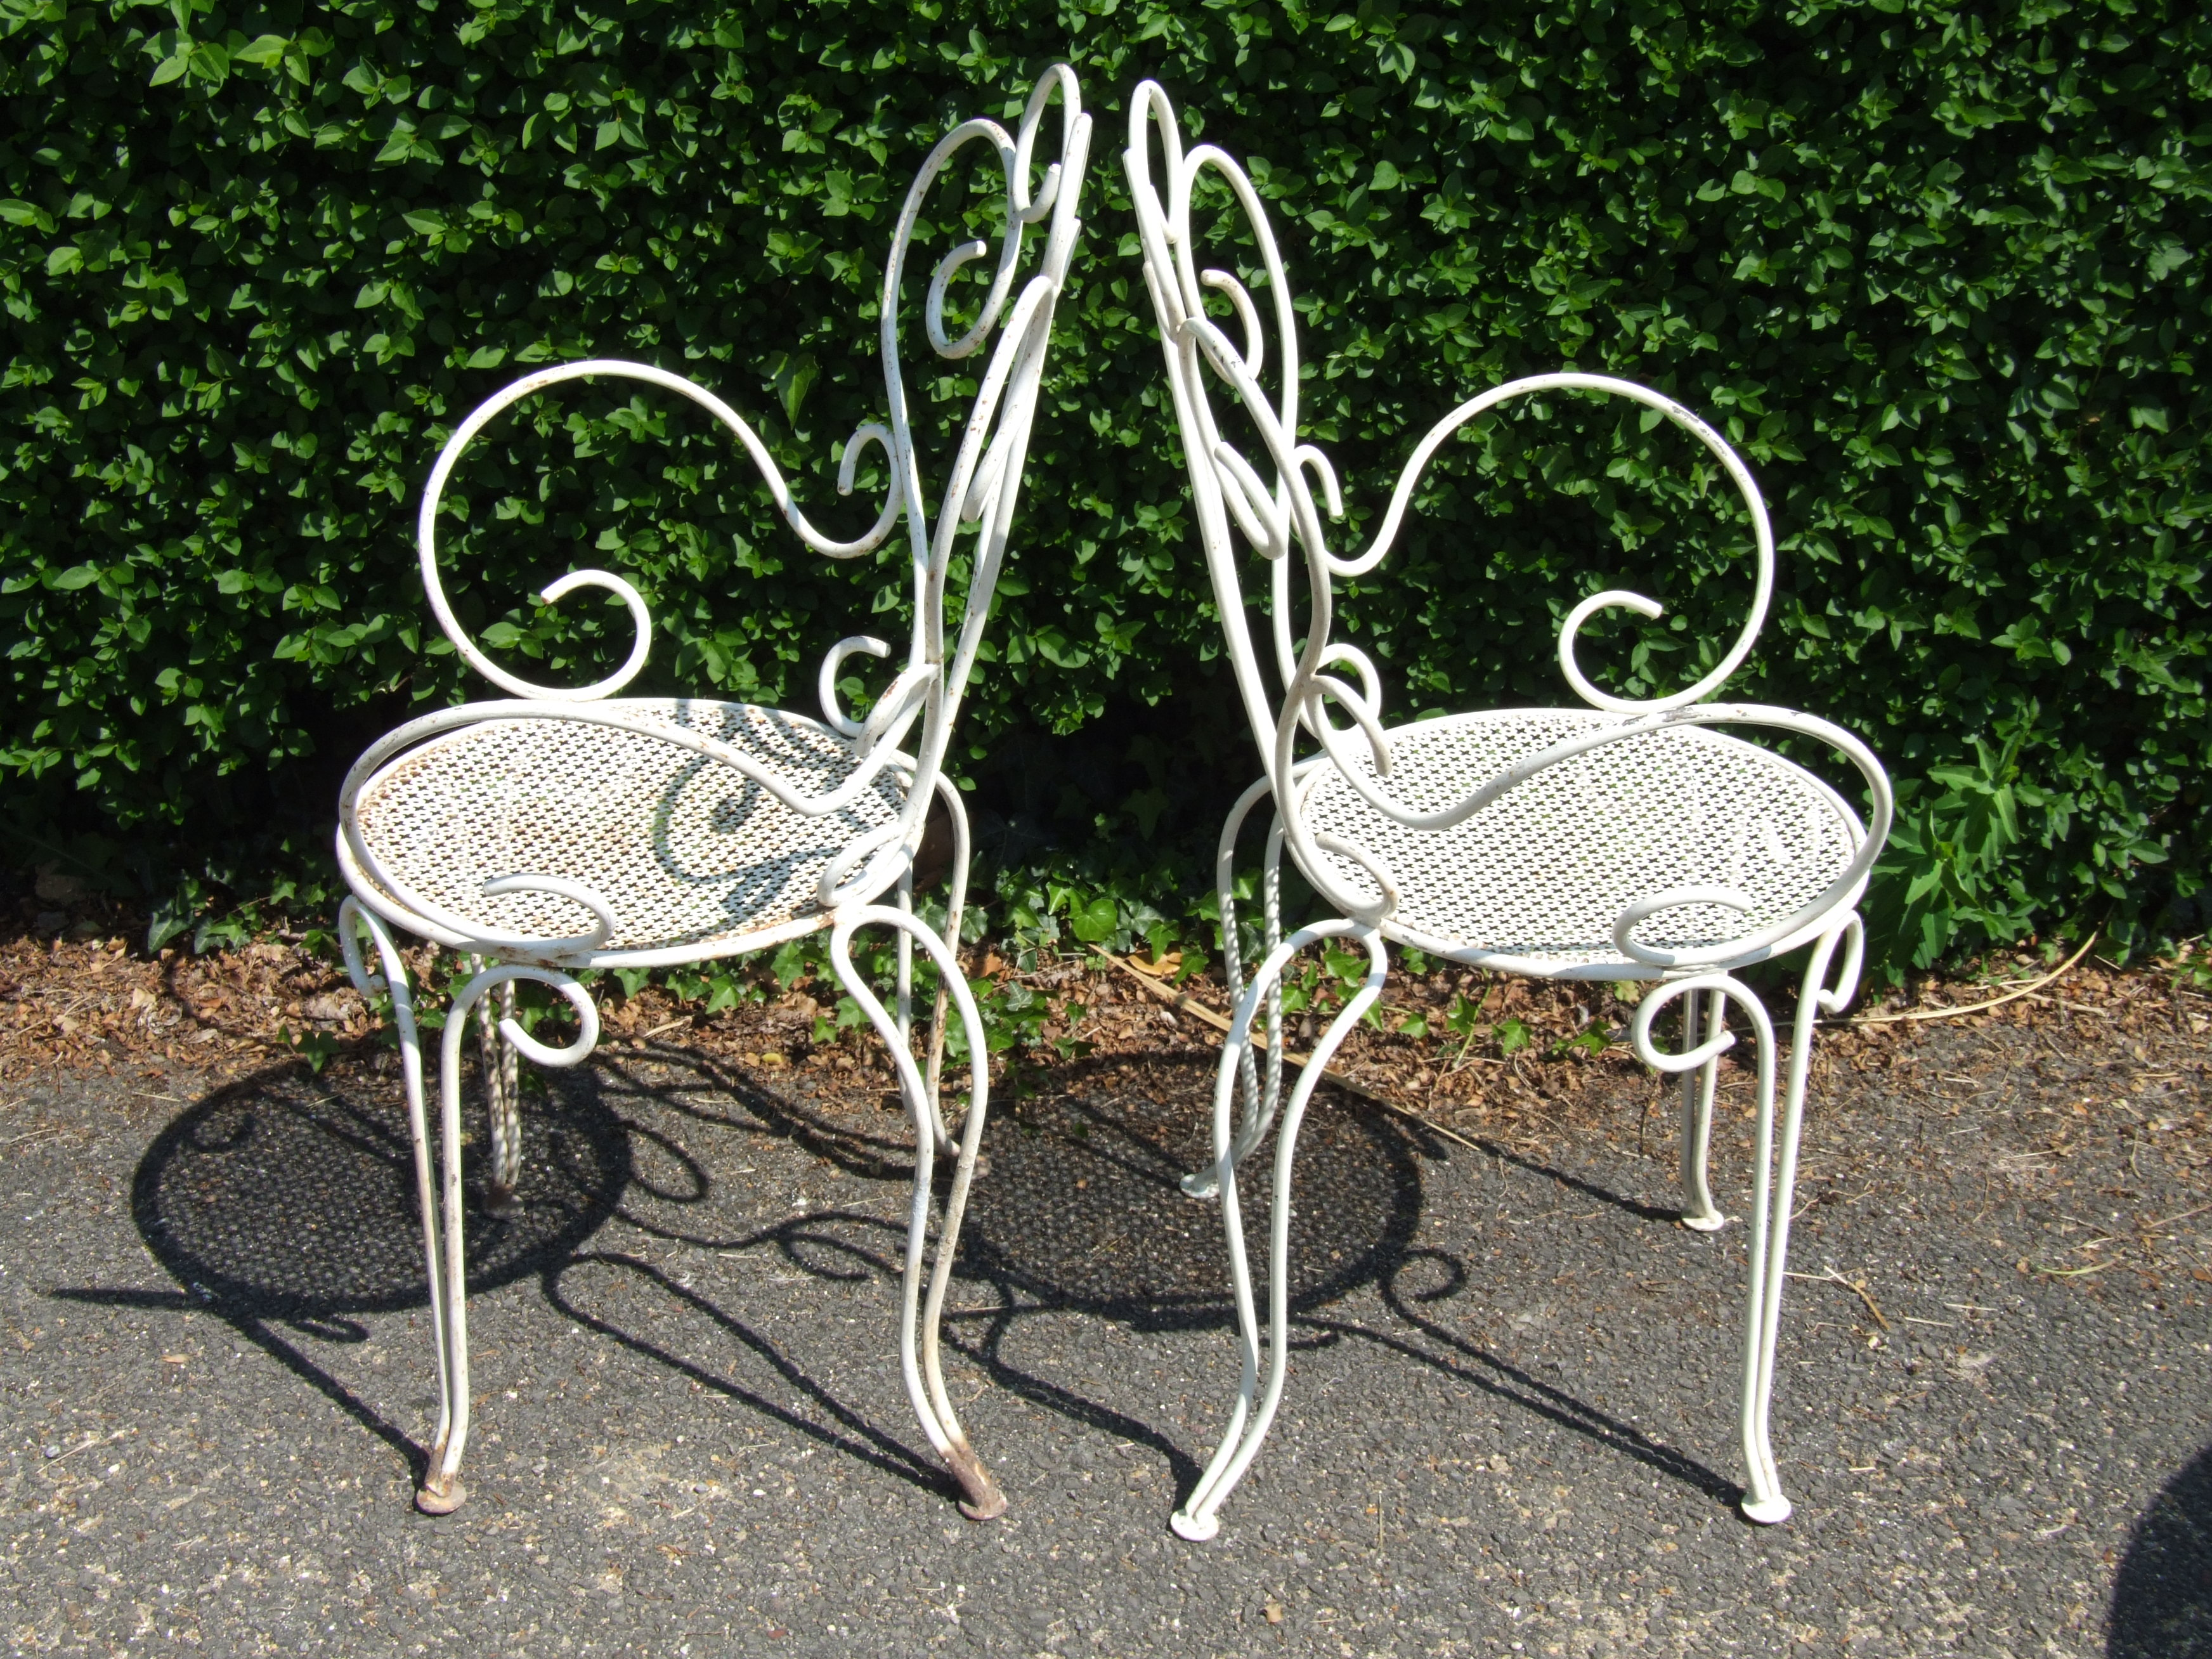 G099 s pair vintage french wrought iron garden patio chairs la belle toffe Metal patio furniture vintage